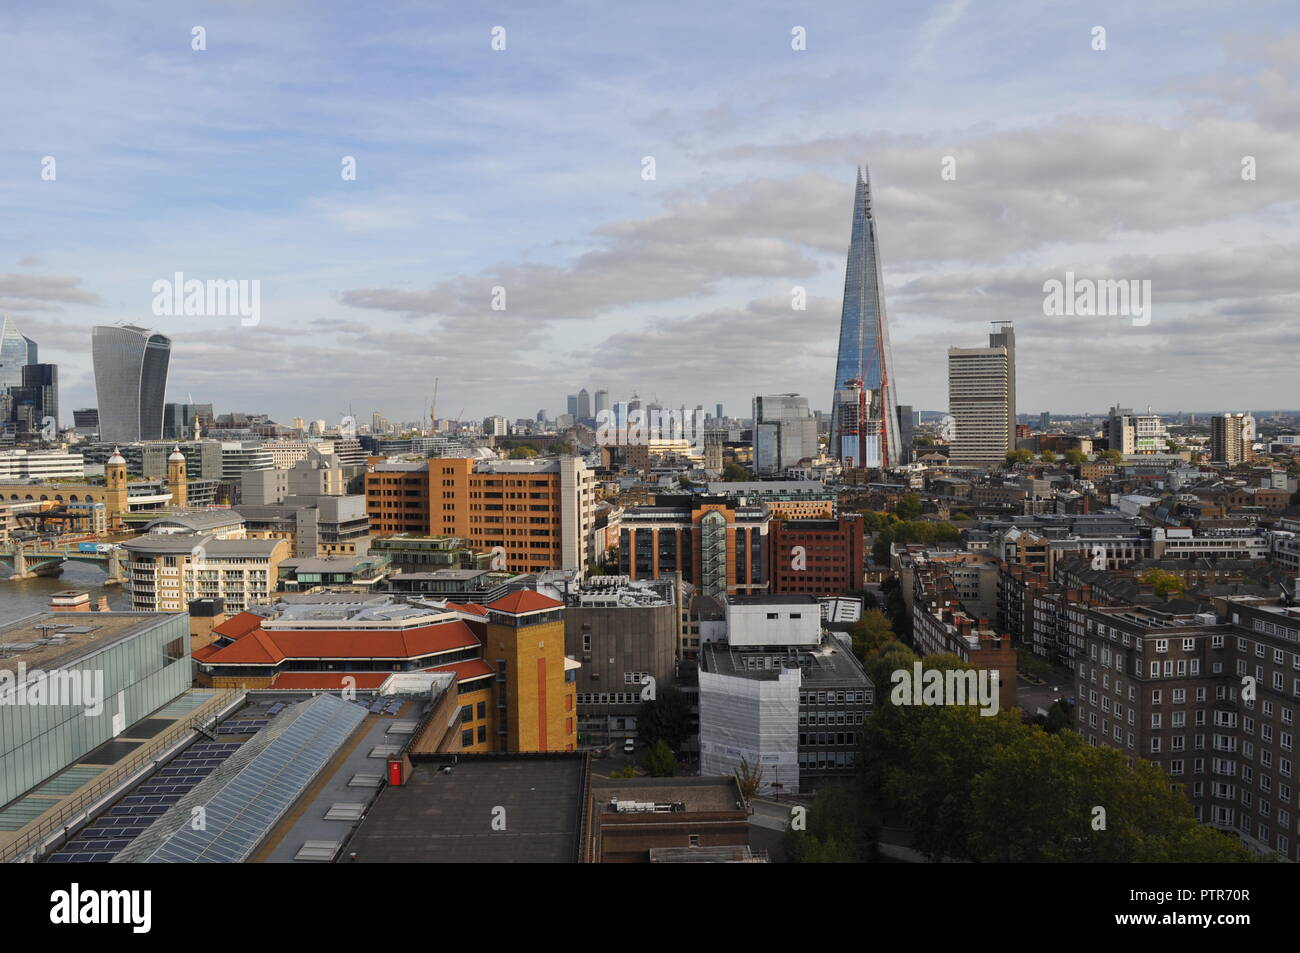 View of London Skyline, from Bankside, looking East toward the Shard, and offices, - Stock Image